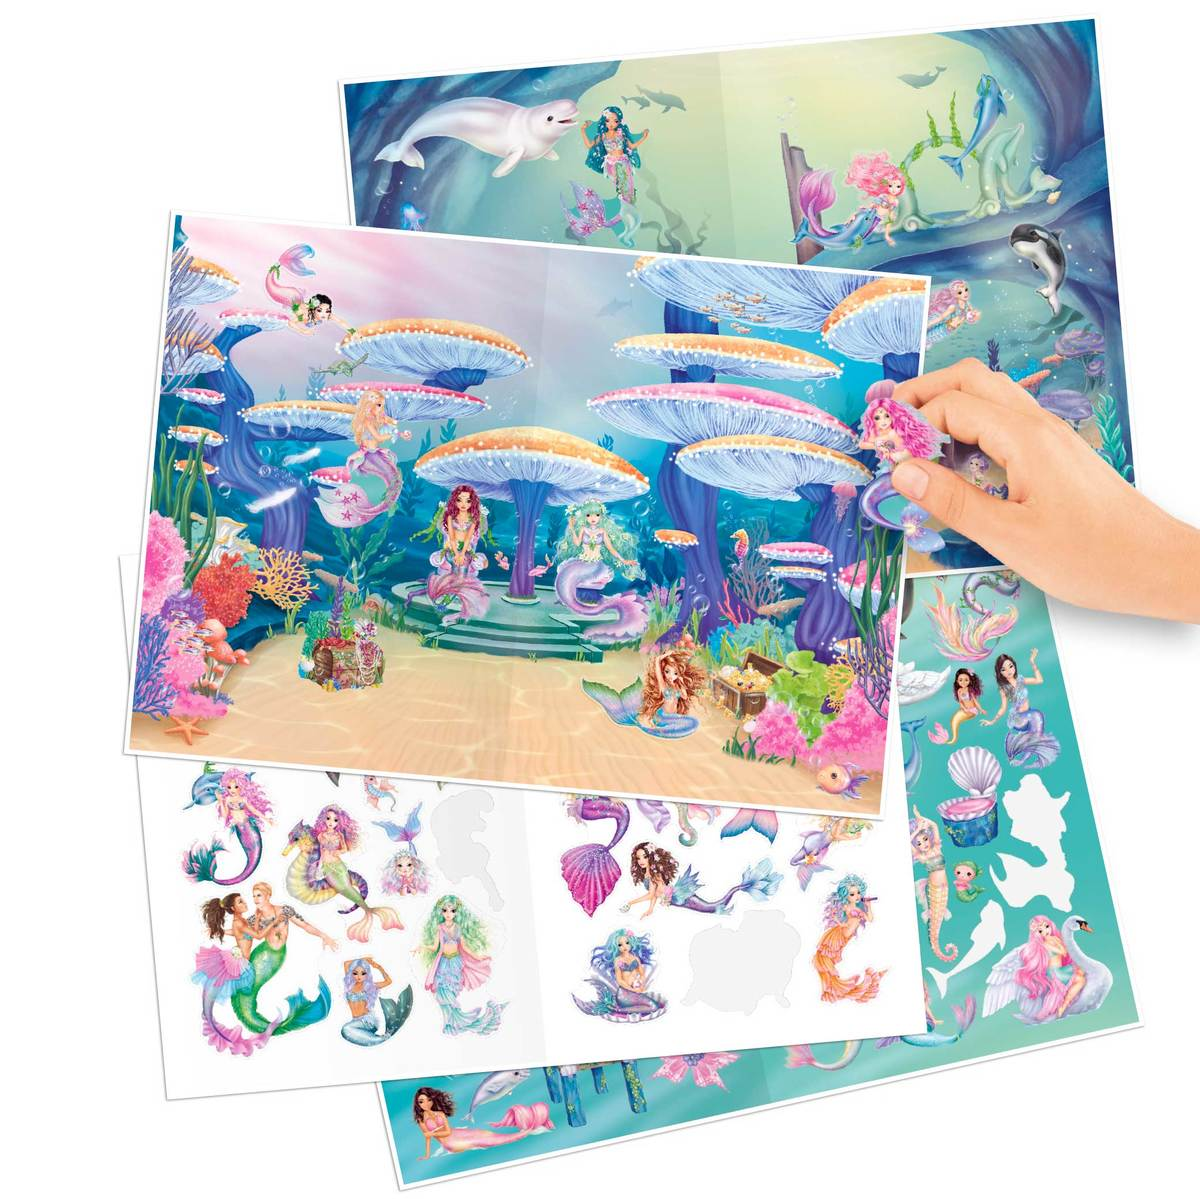 ,Fantasy model mermaid stickerworld - 149 stickers